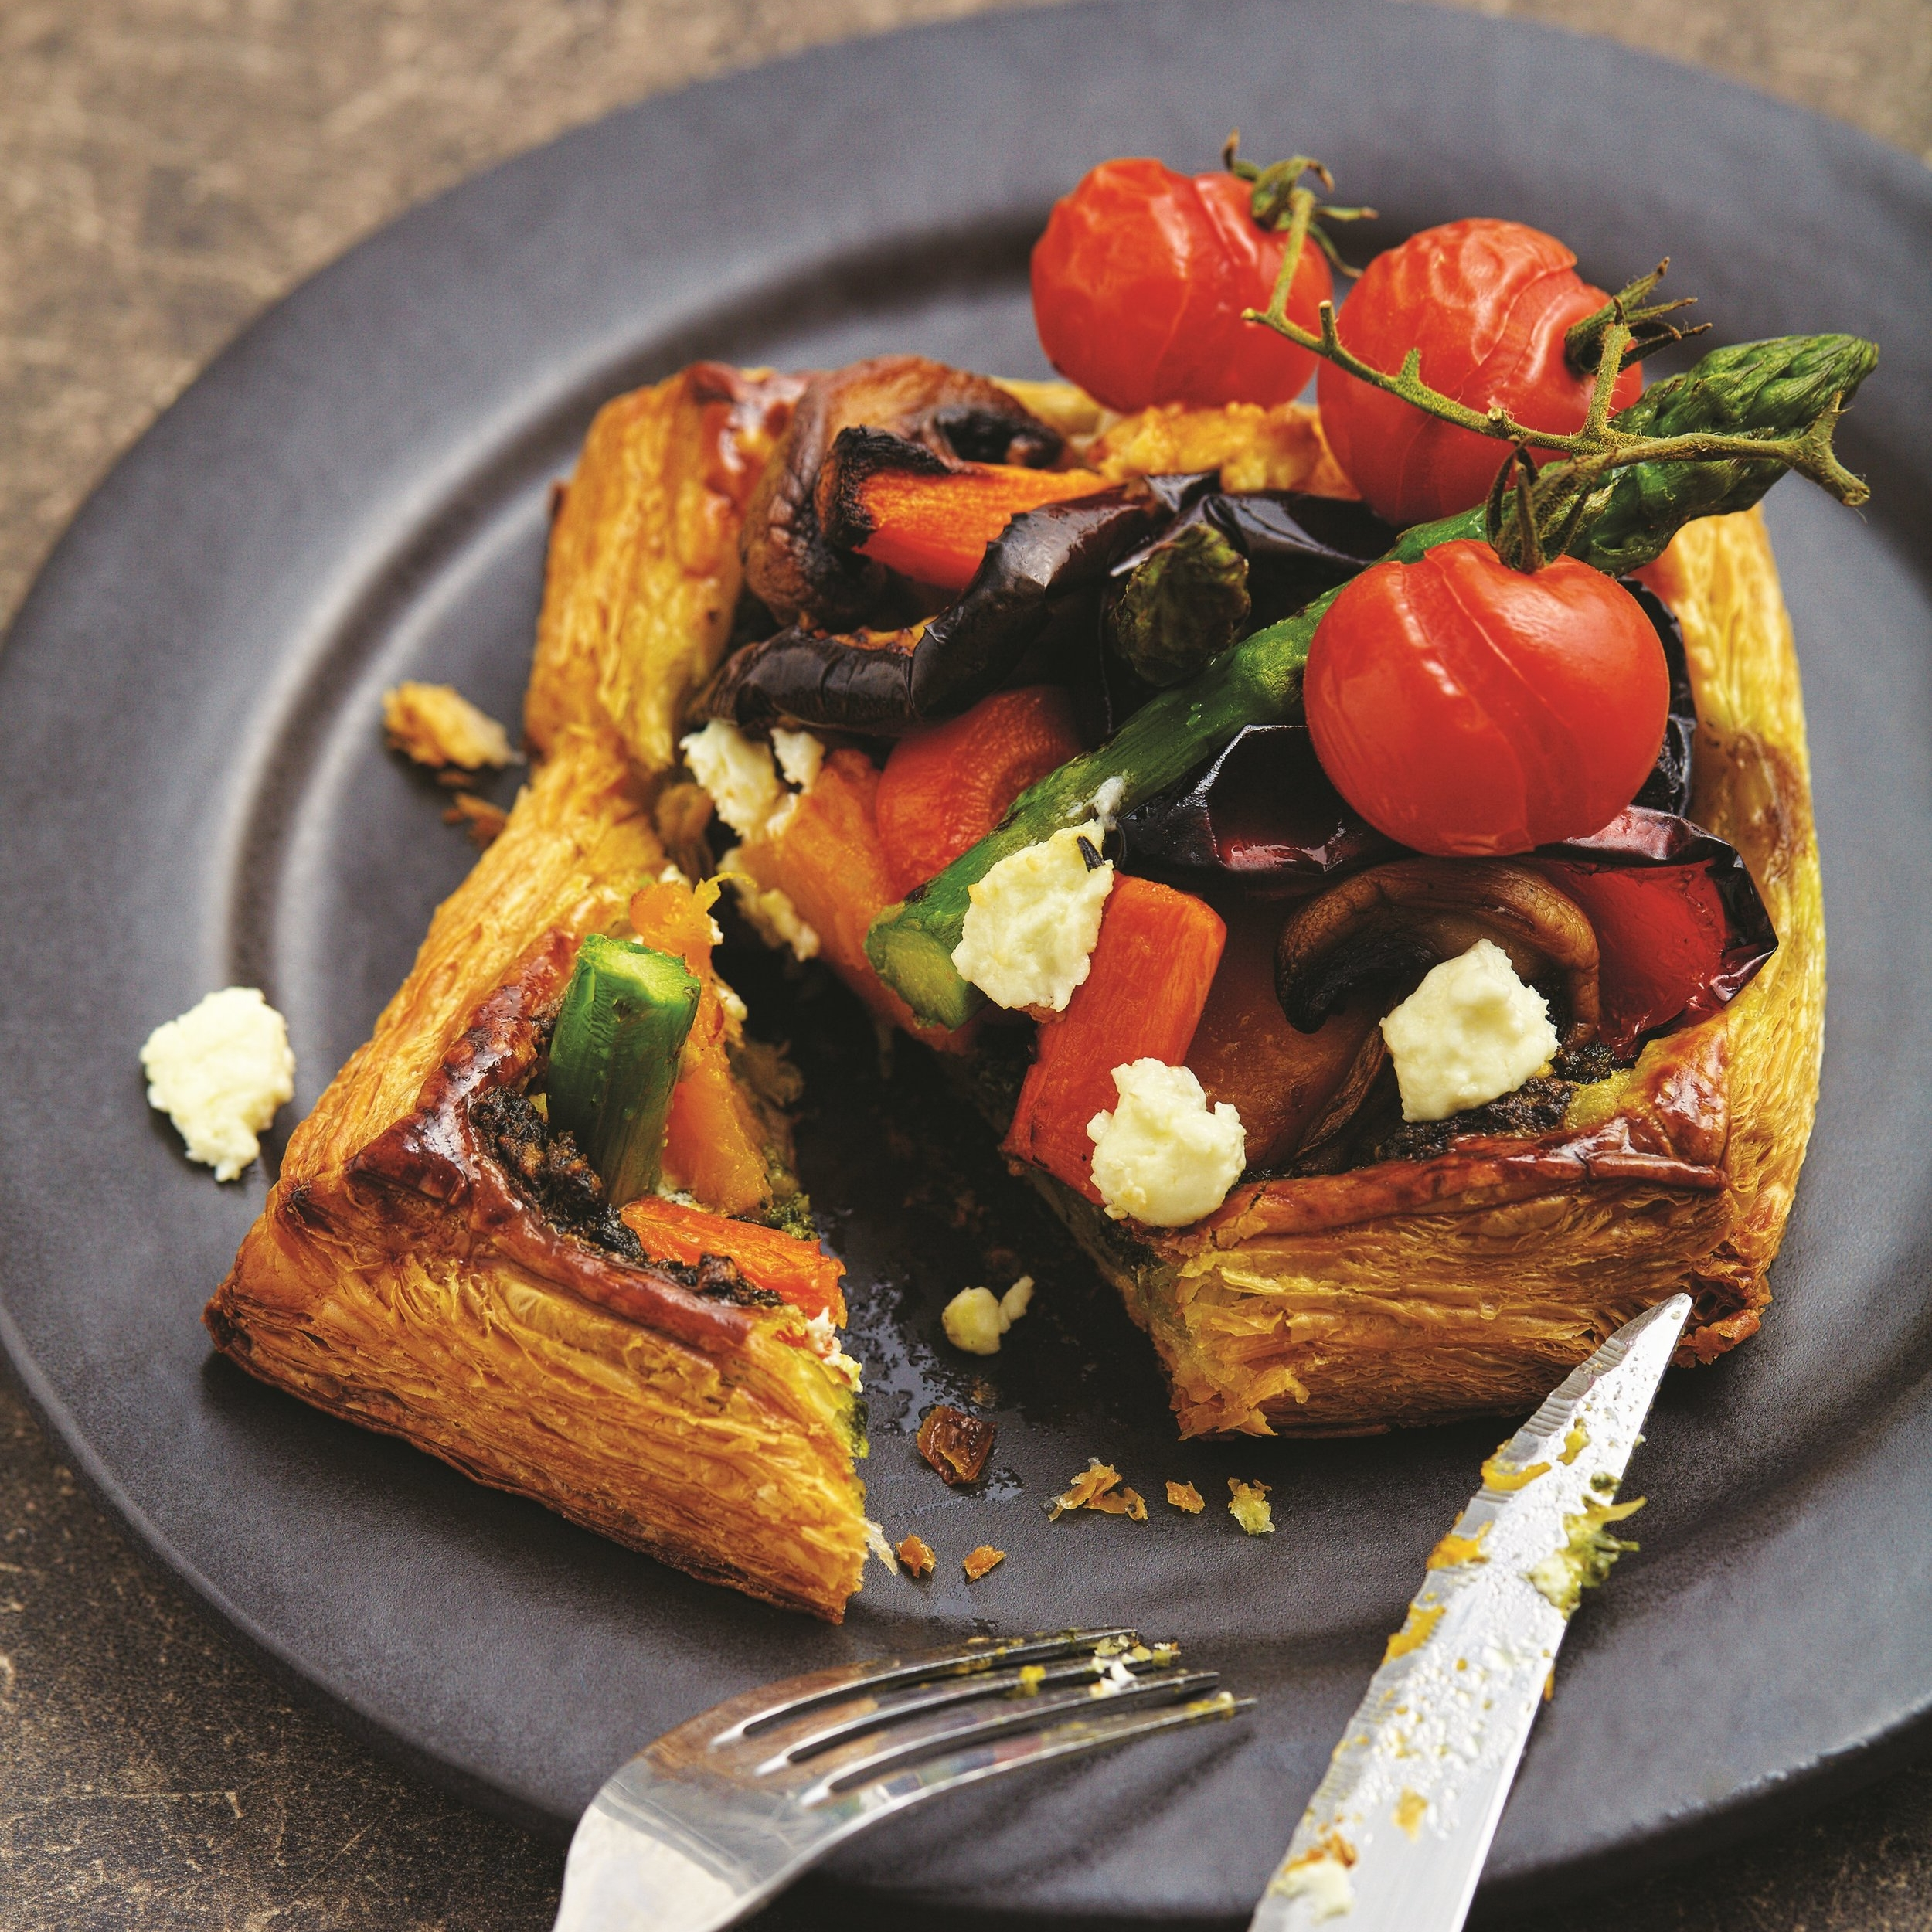 Oven Roasted Vegetables Tarts Recipe. - This Holiday, skip the crowd and take the chance to busk in the comforts of your homes with this recipe by Dean Brettschneider of Baker & Cook.